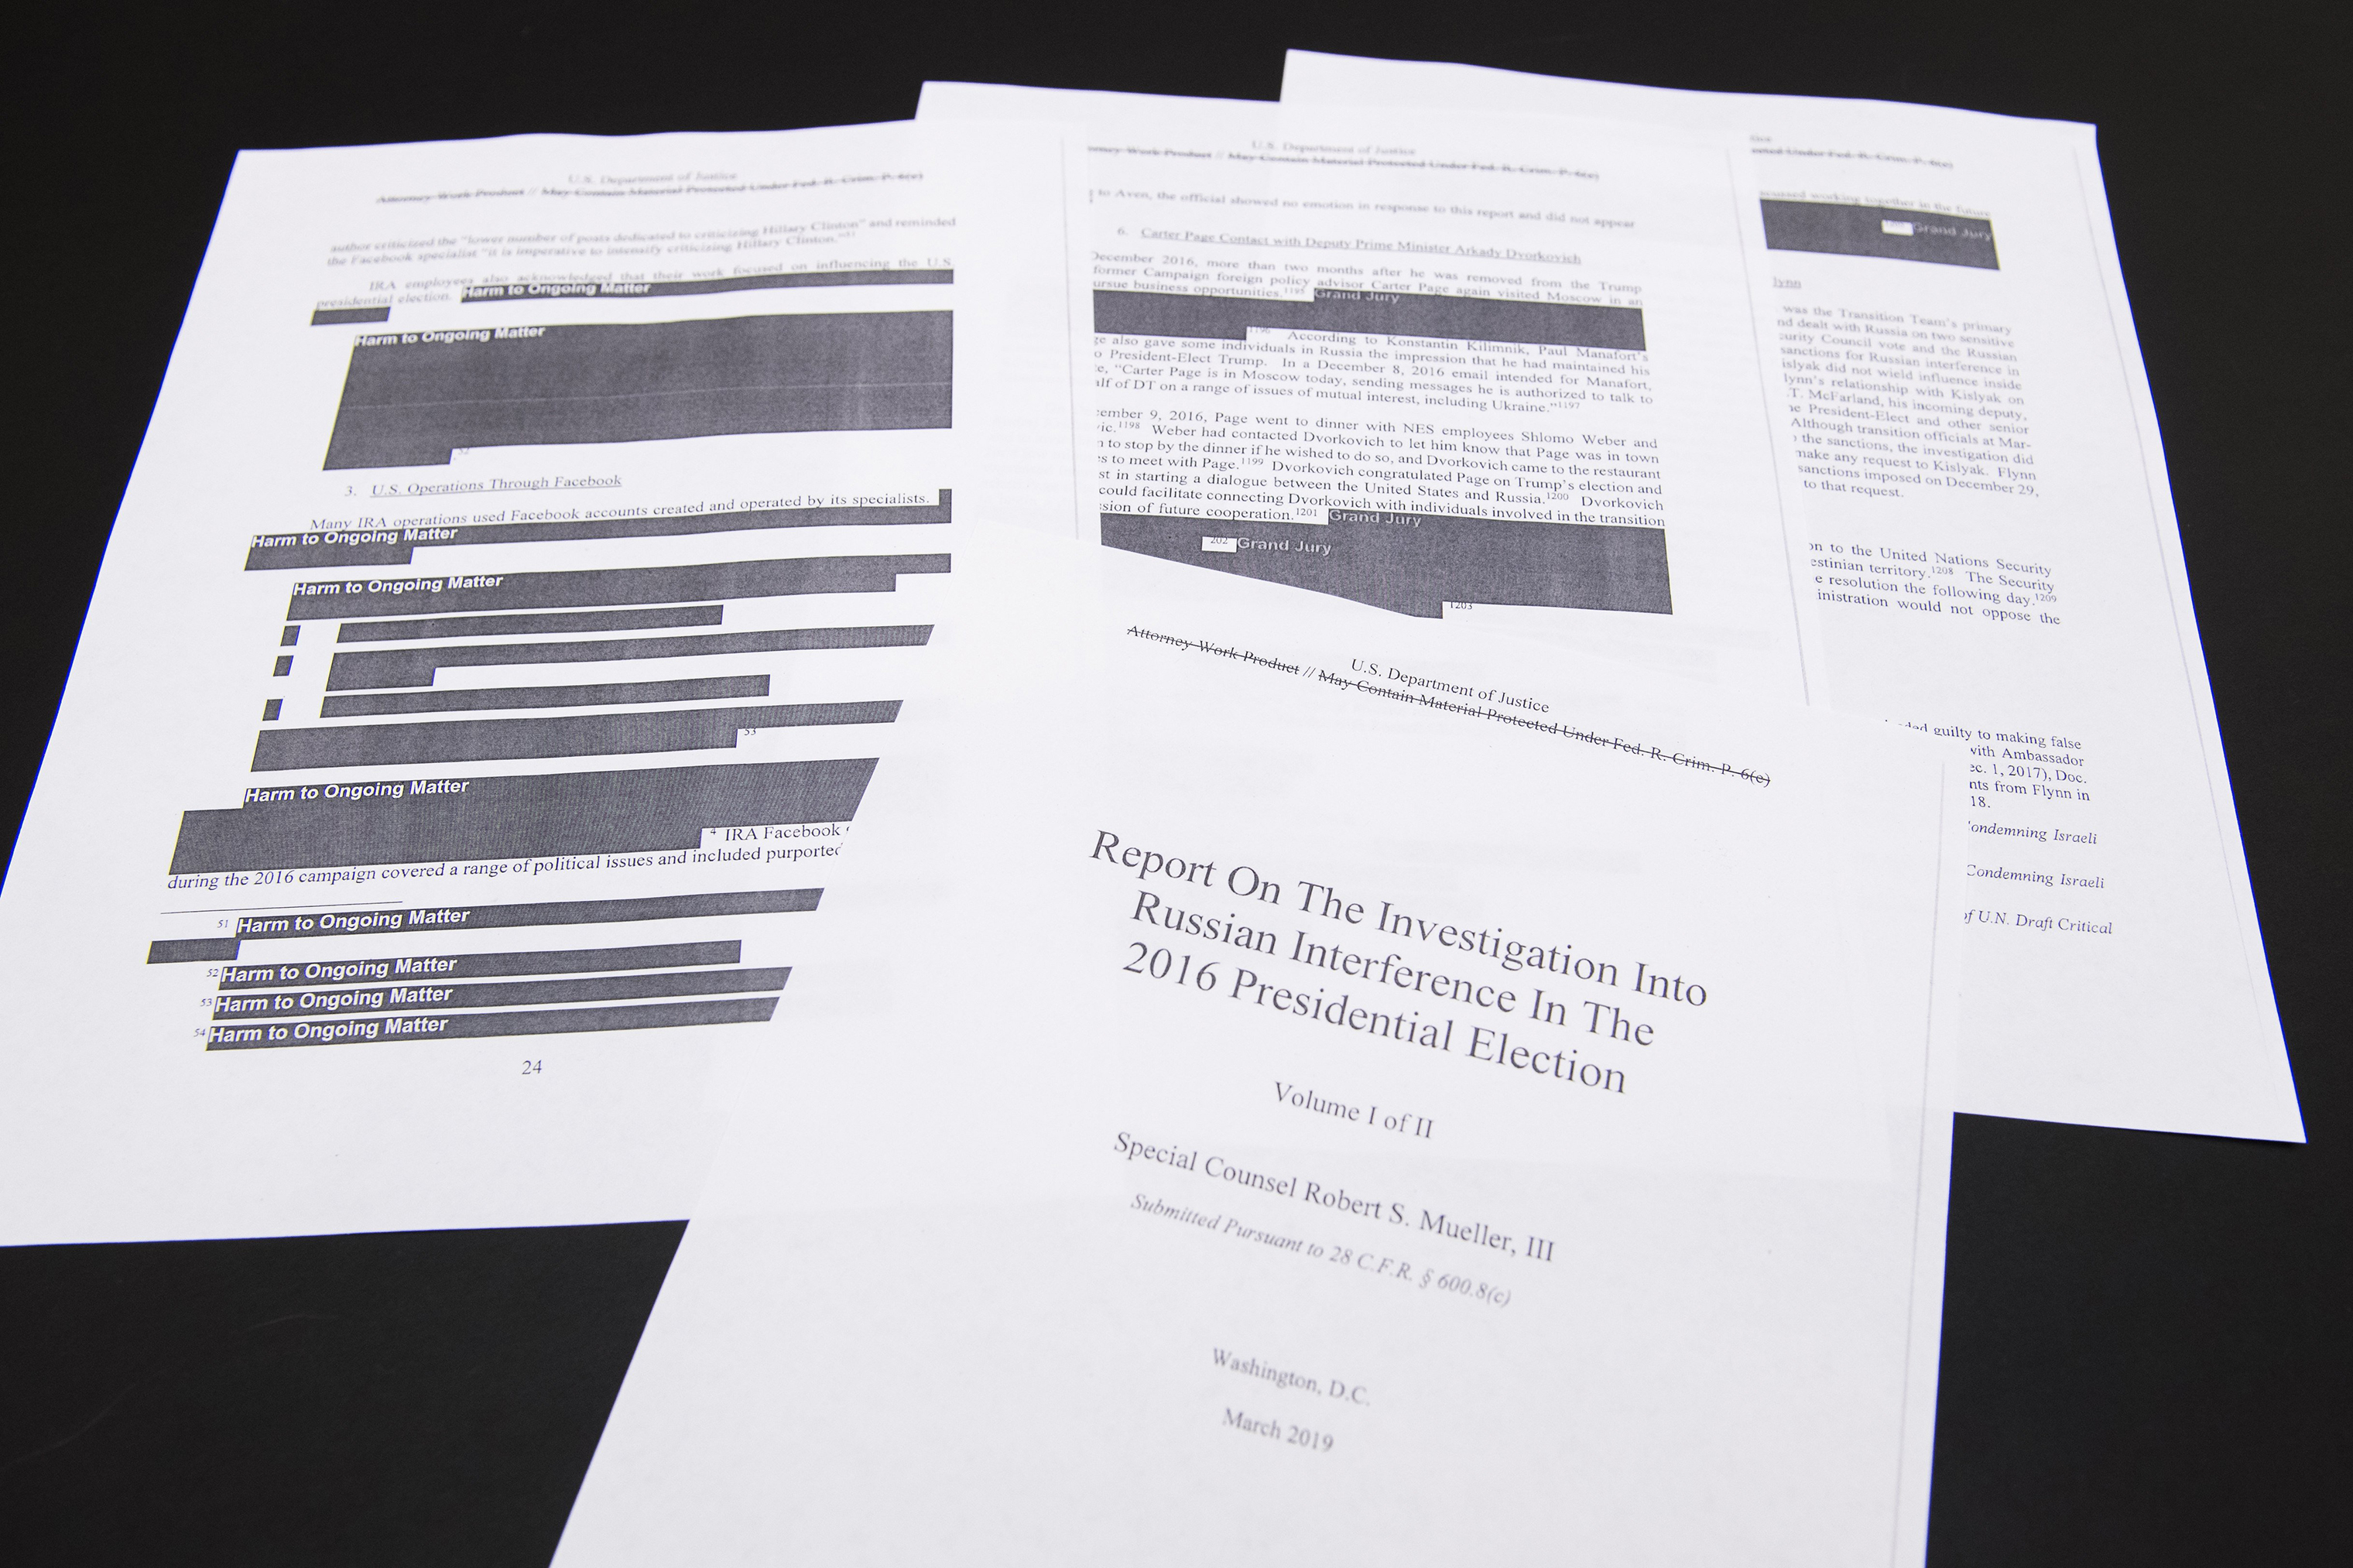 A few pages of special counsel Robert Mueller's report on Russian interference in the 2016 election.